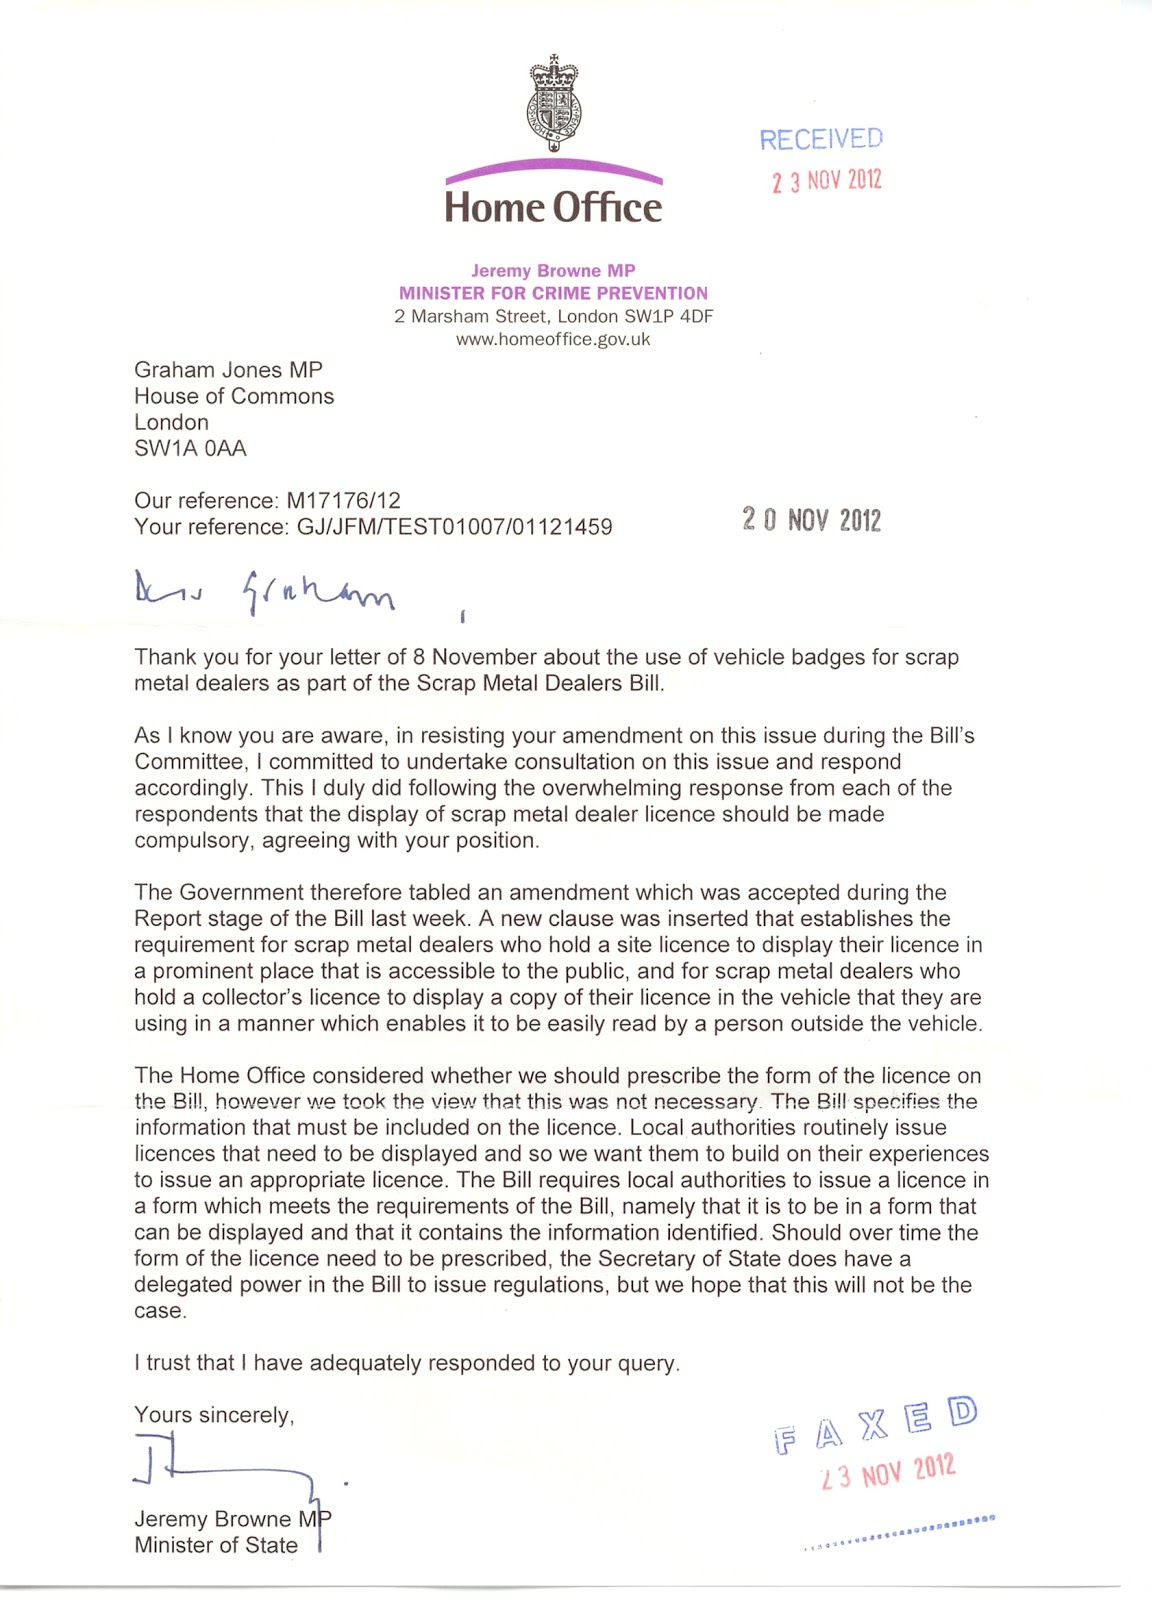 Graham jones 11012012 12012012 government accepts my amendment on vehicle badging for scrap metal collectors thecheapjerseys Images